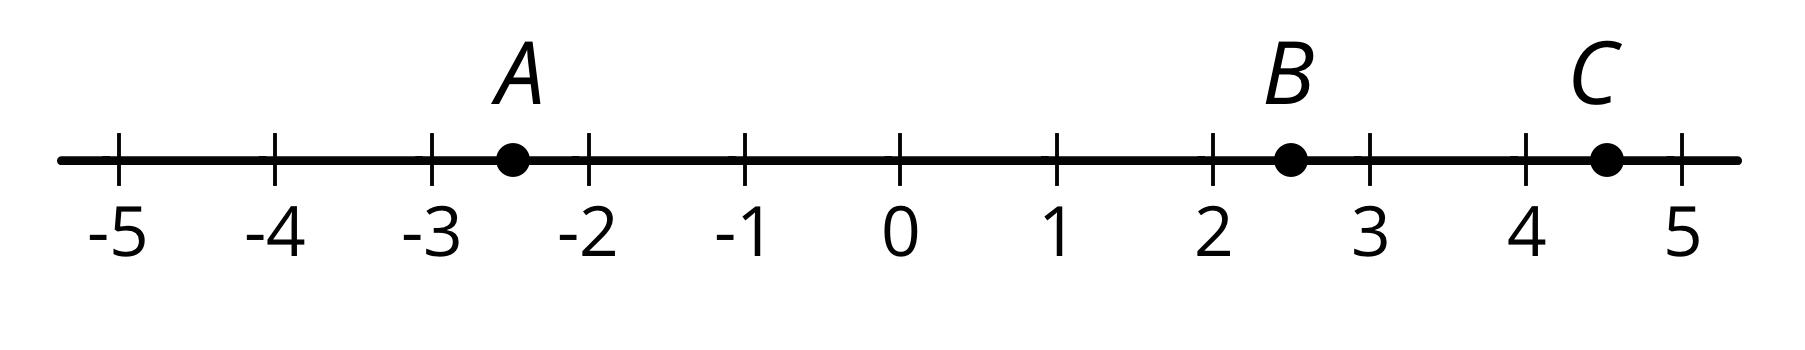 Three Points A B And C Plotted On Number Line With The Numbers